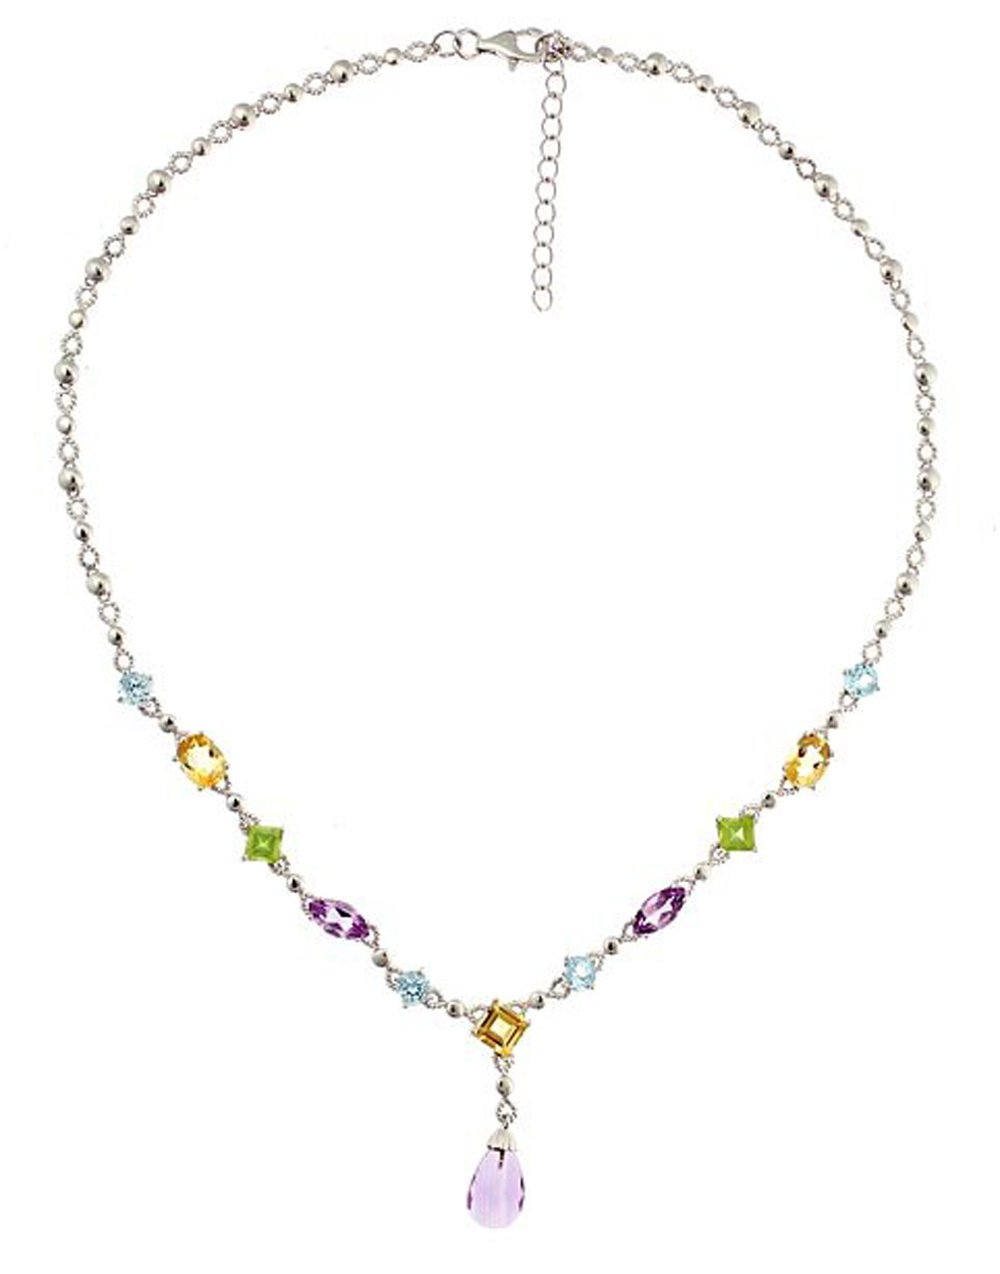 Sterling Silver 925 Multi Genuine Gemstone Adjustable Womens Necklace 16'' - 18'' - The Royal Gift